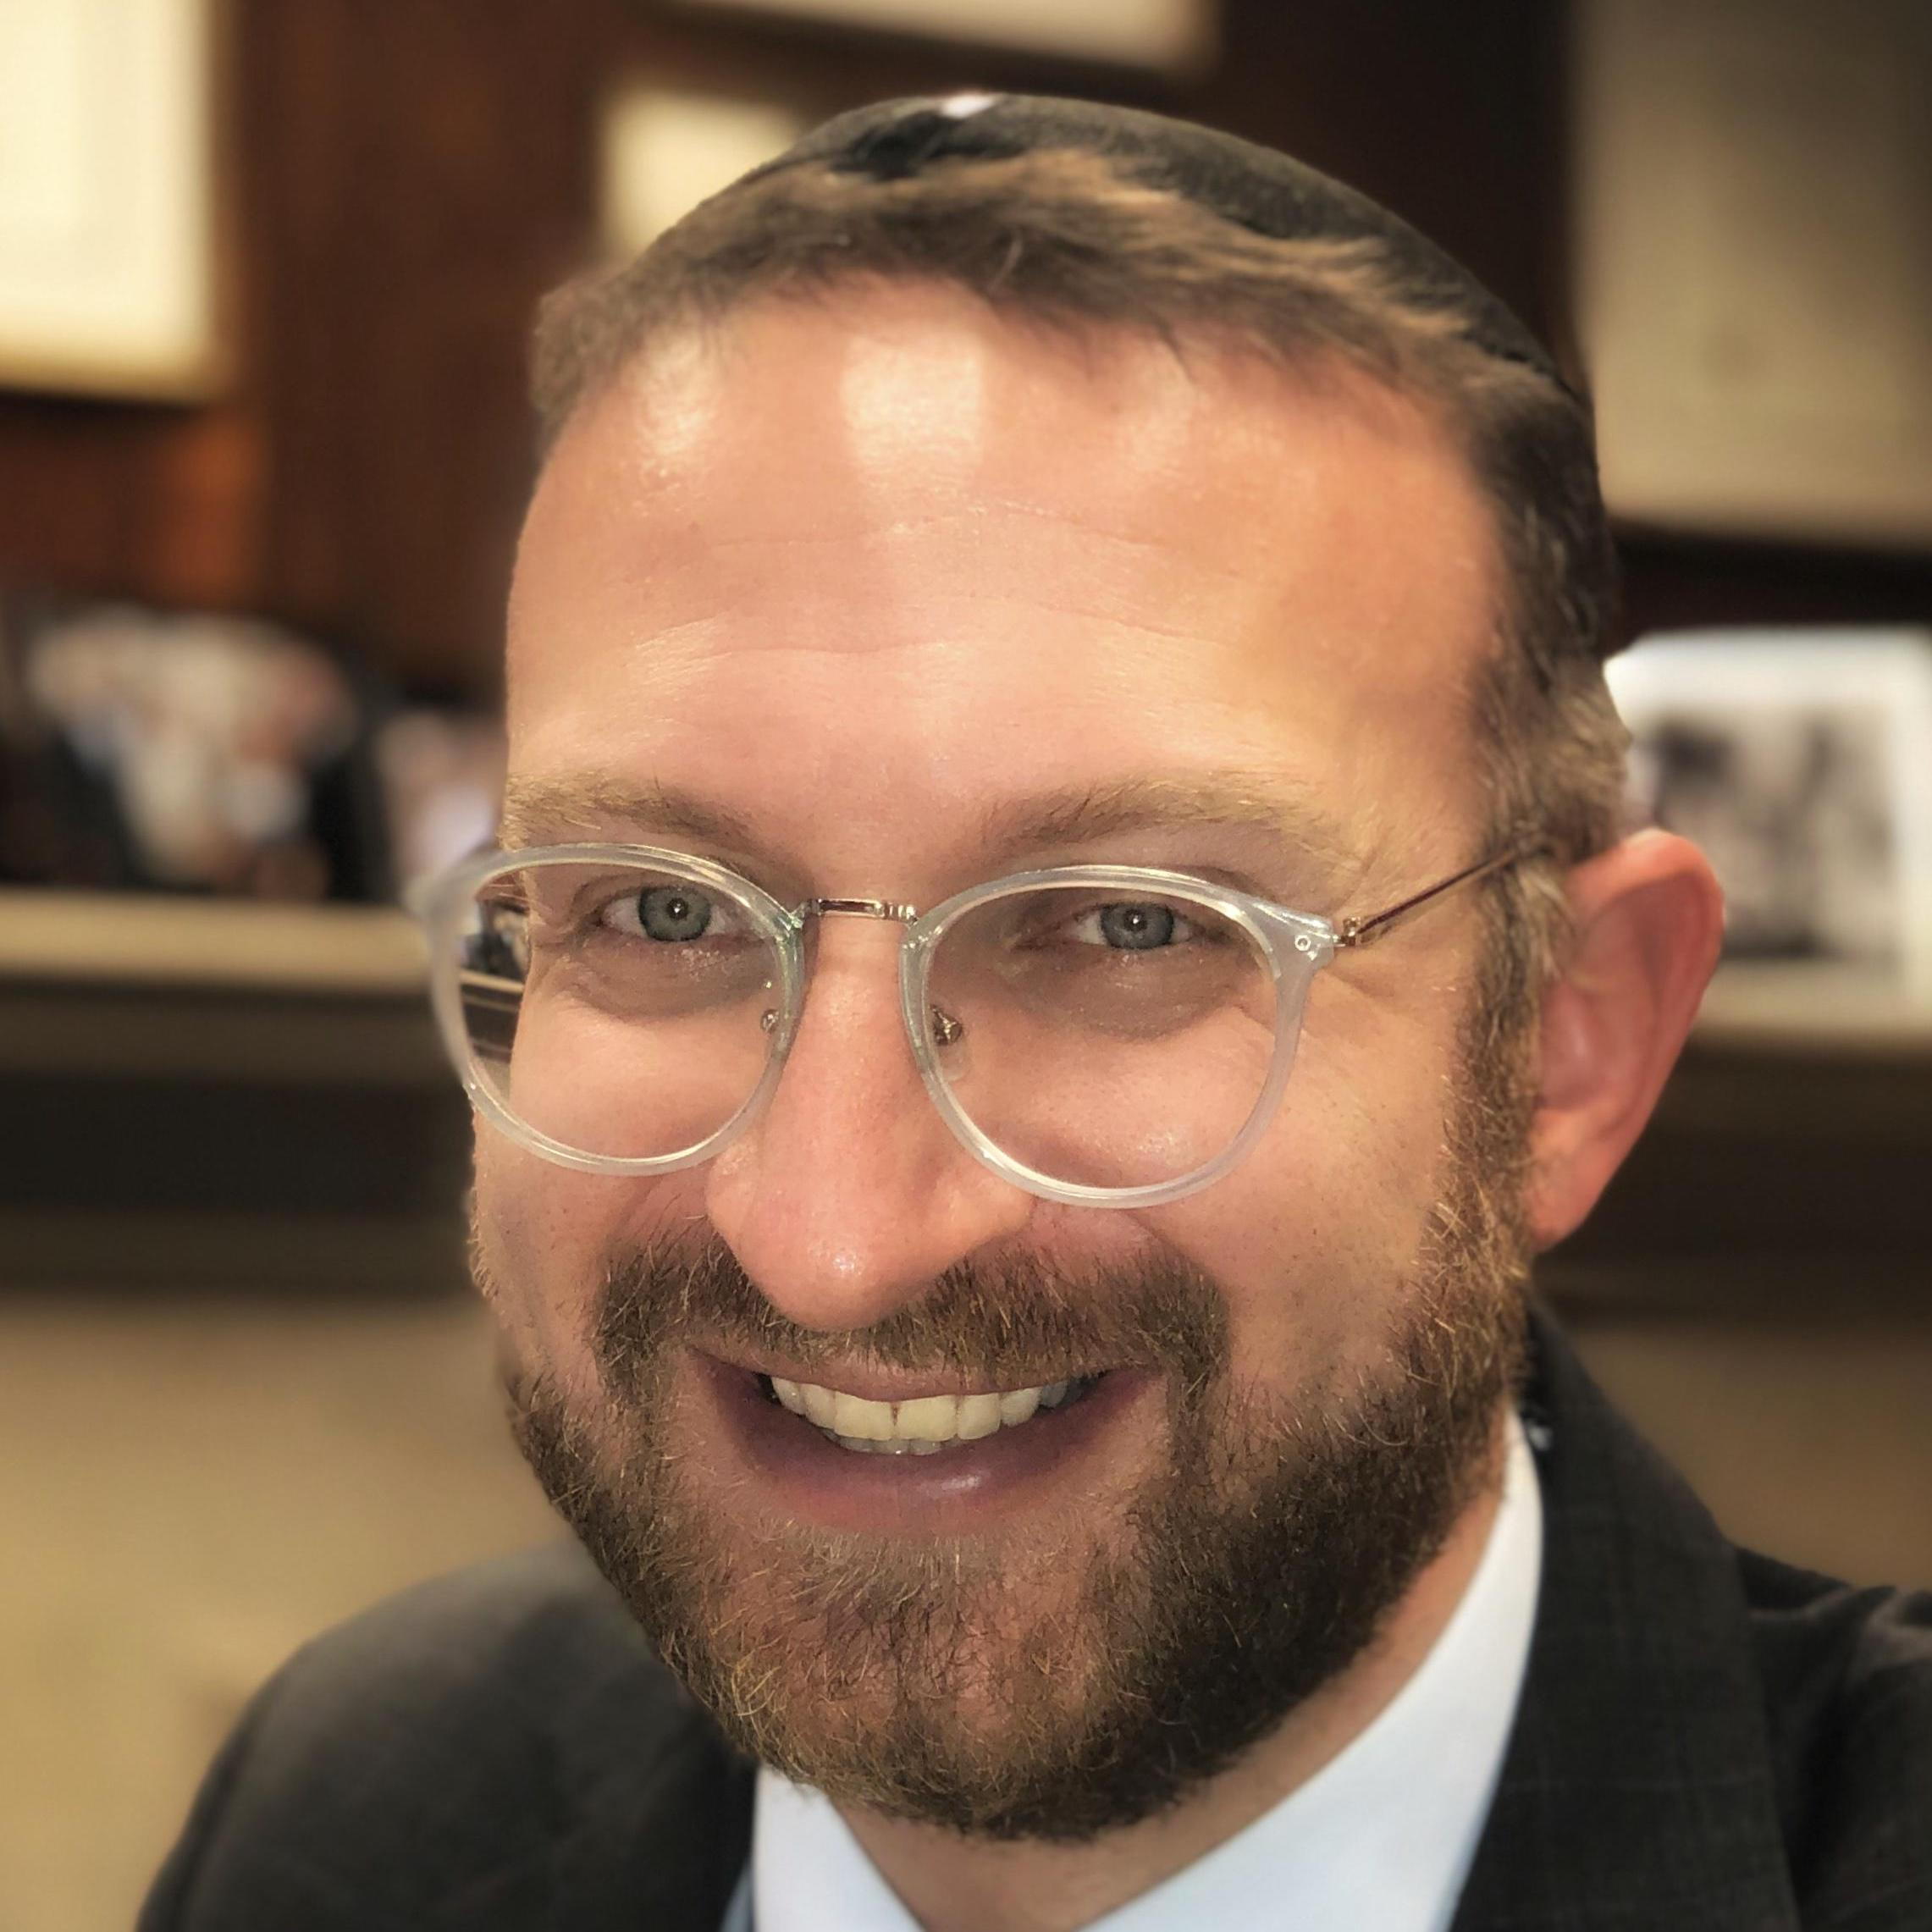 Rabbi Dr. Gil S. Perl's Profile Photo